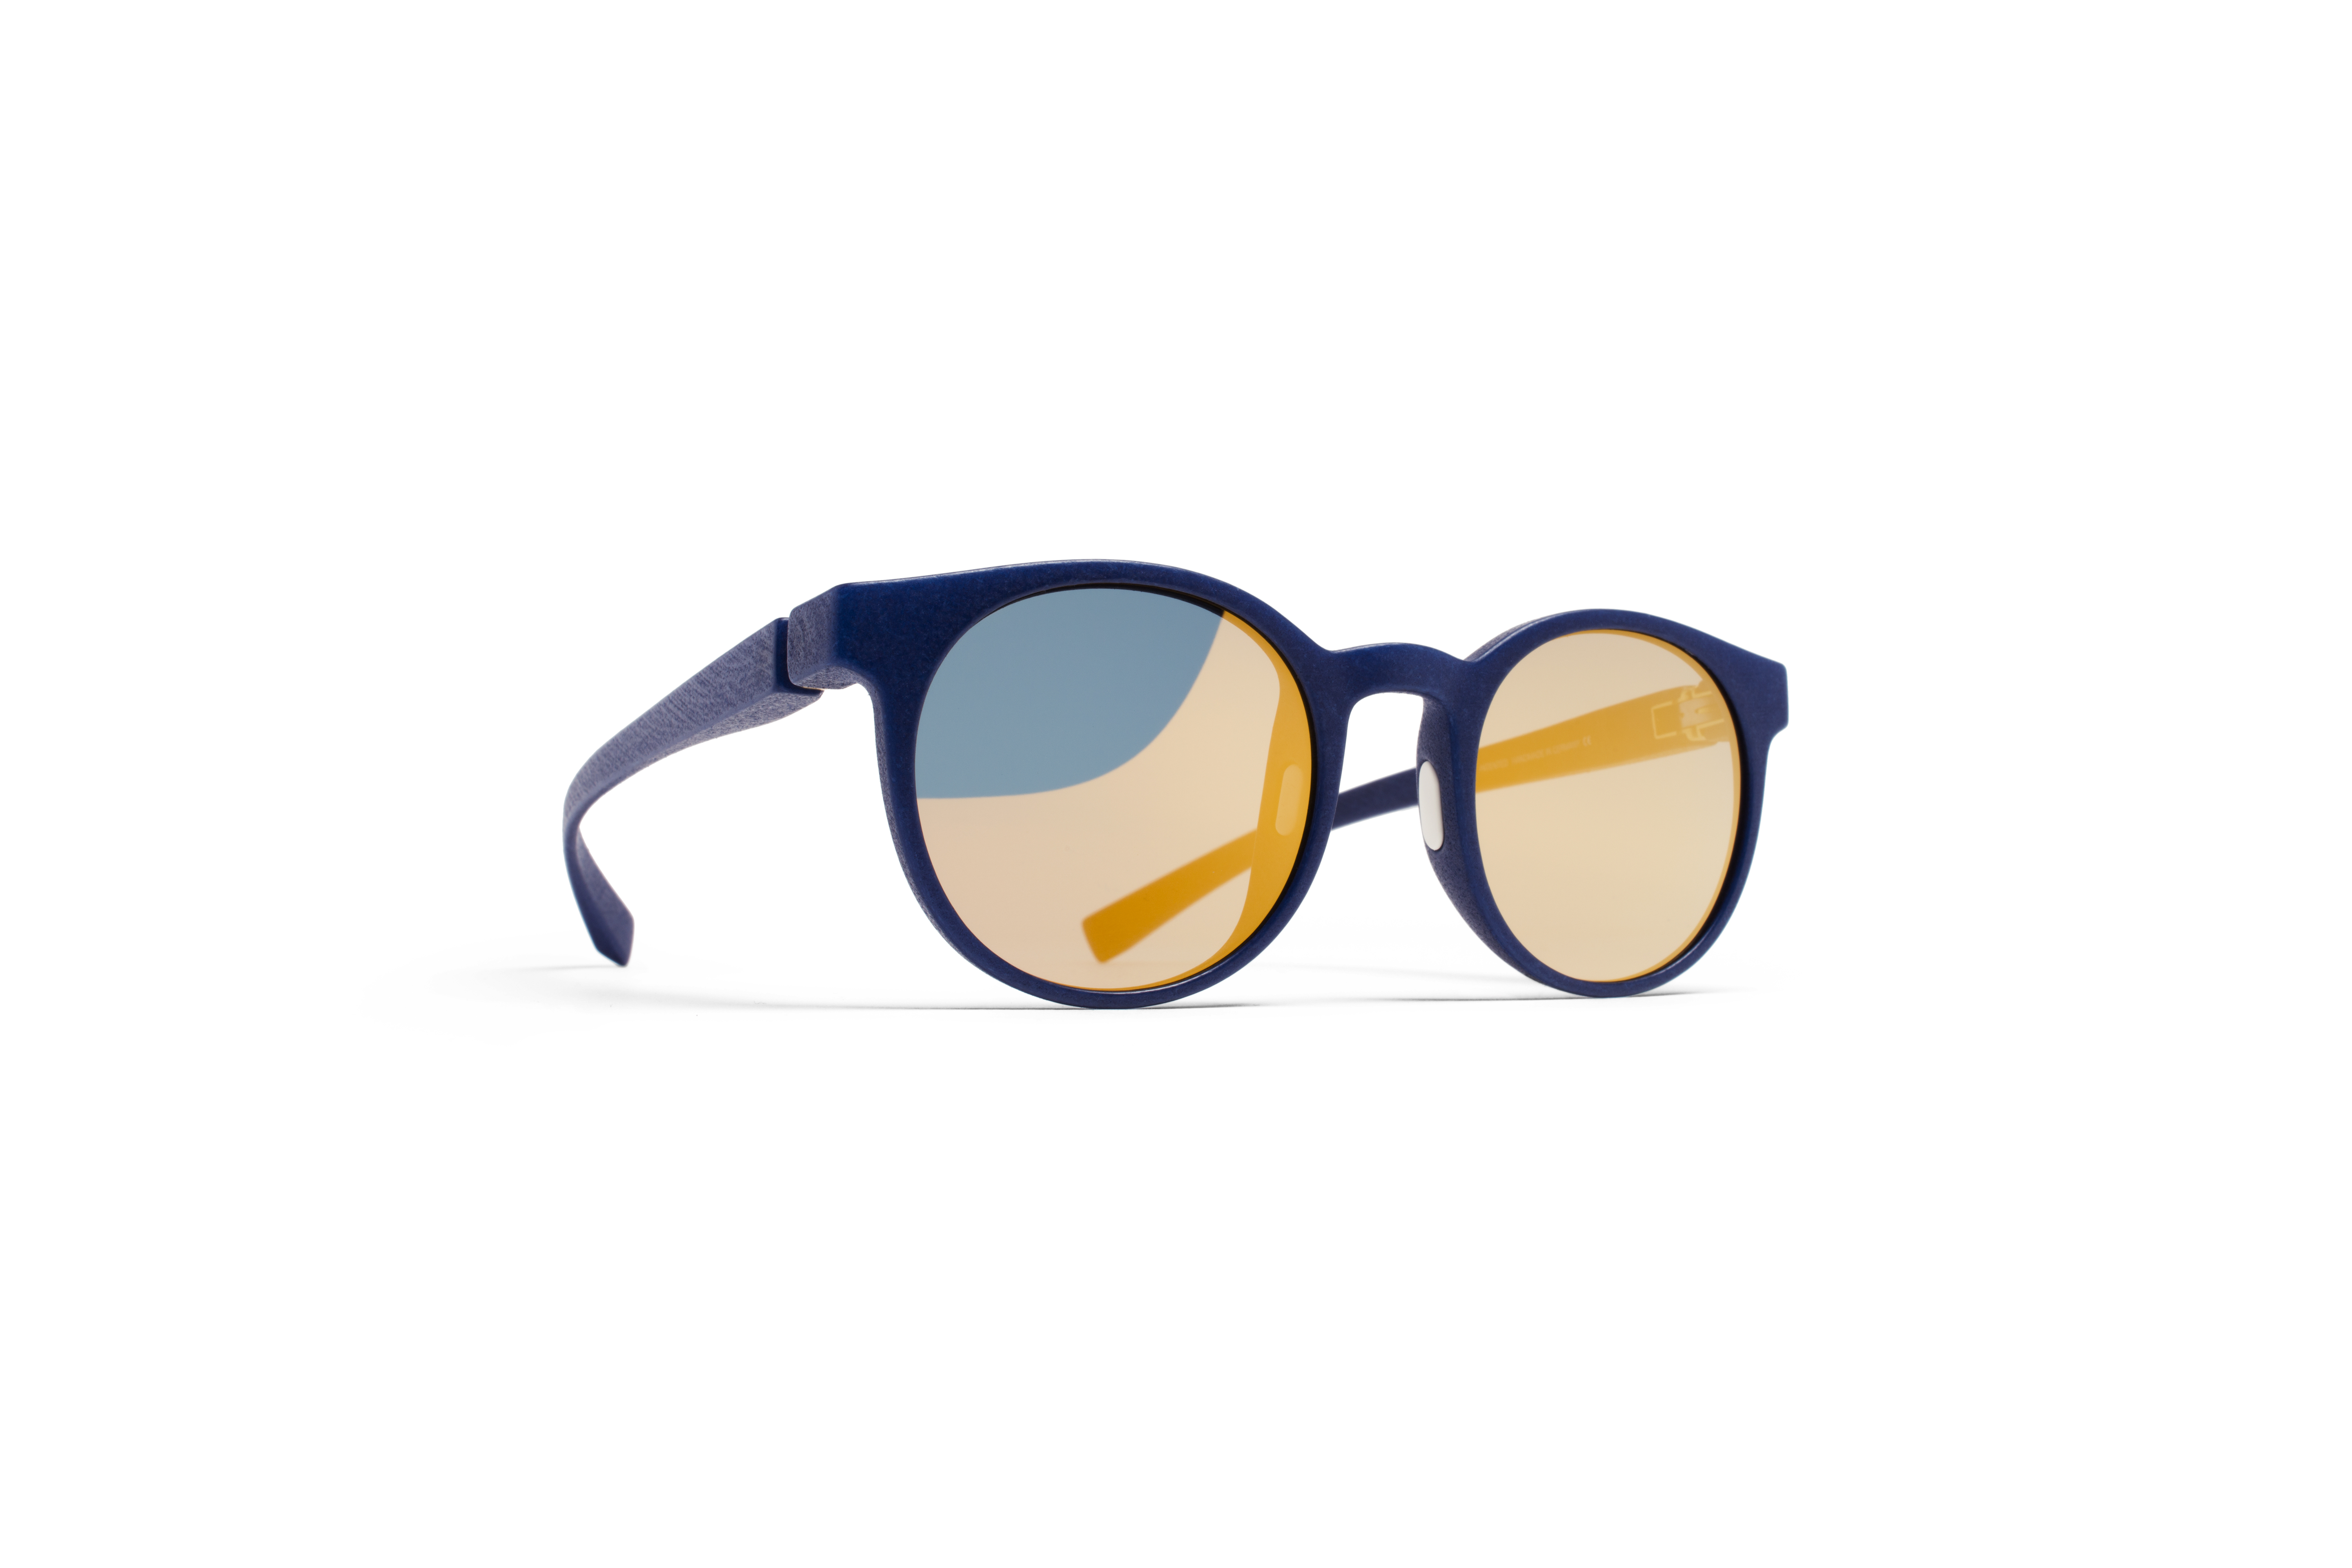 MYKITA Mylon Sun Omega Md25 Navy Blue Grey Pearlyg574ed77436553